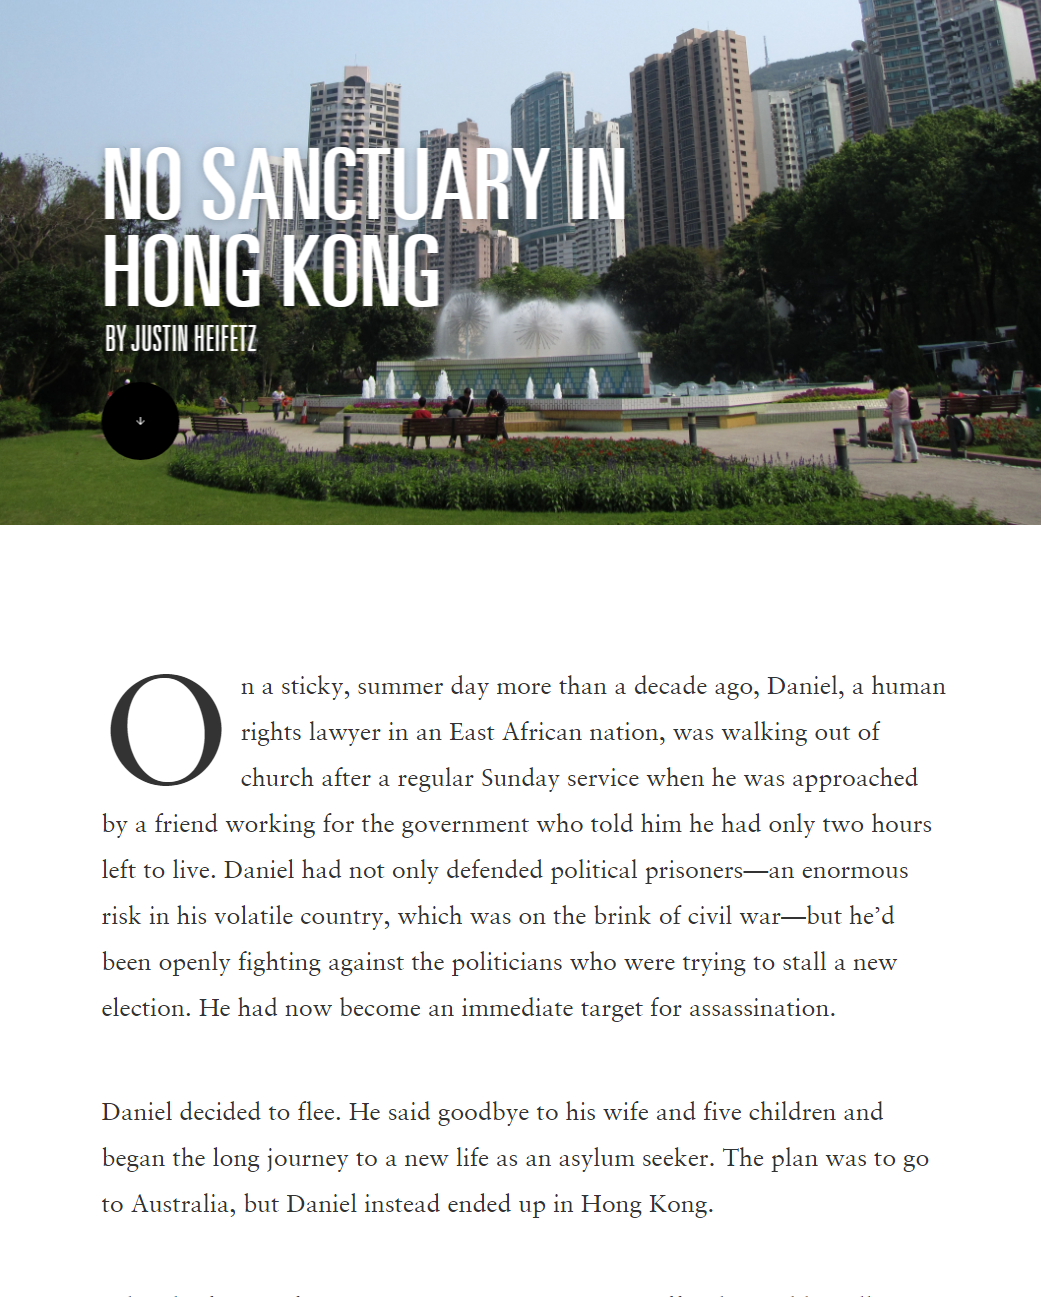 No sanctuary in Hong Kong